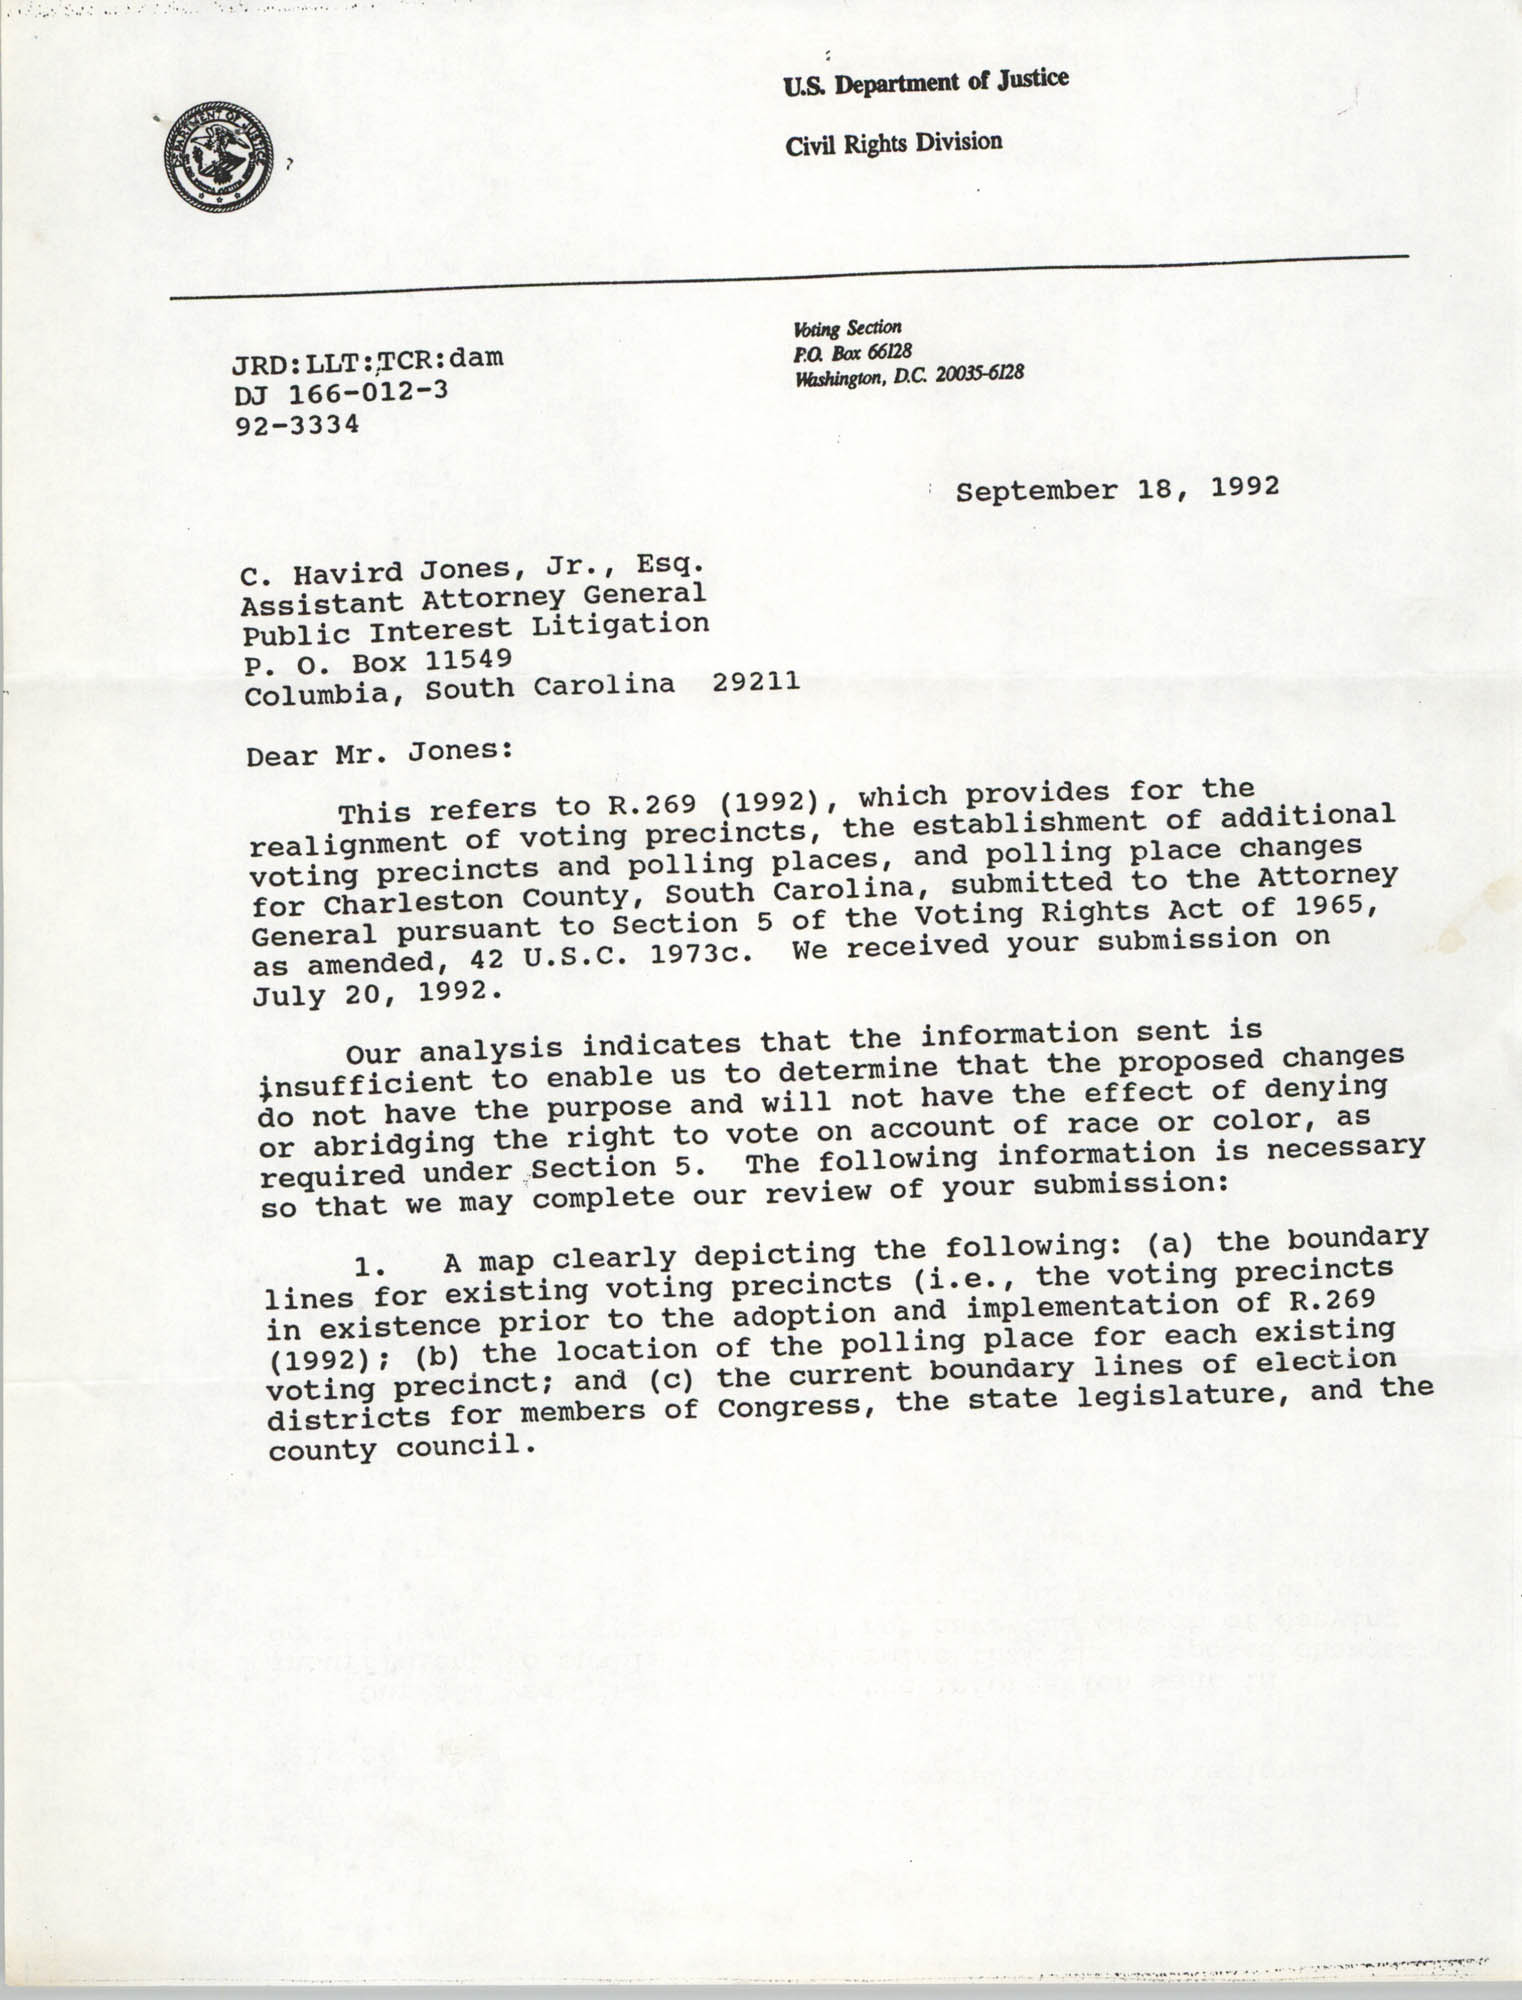 Letter from John R. Dunne to C. Havird Jones, Jr., September 18, 1992